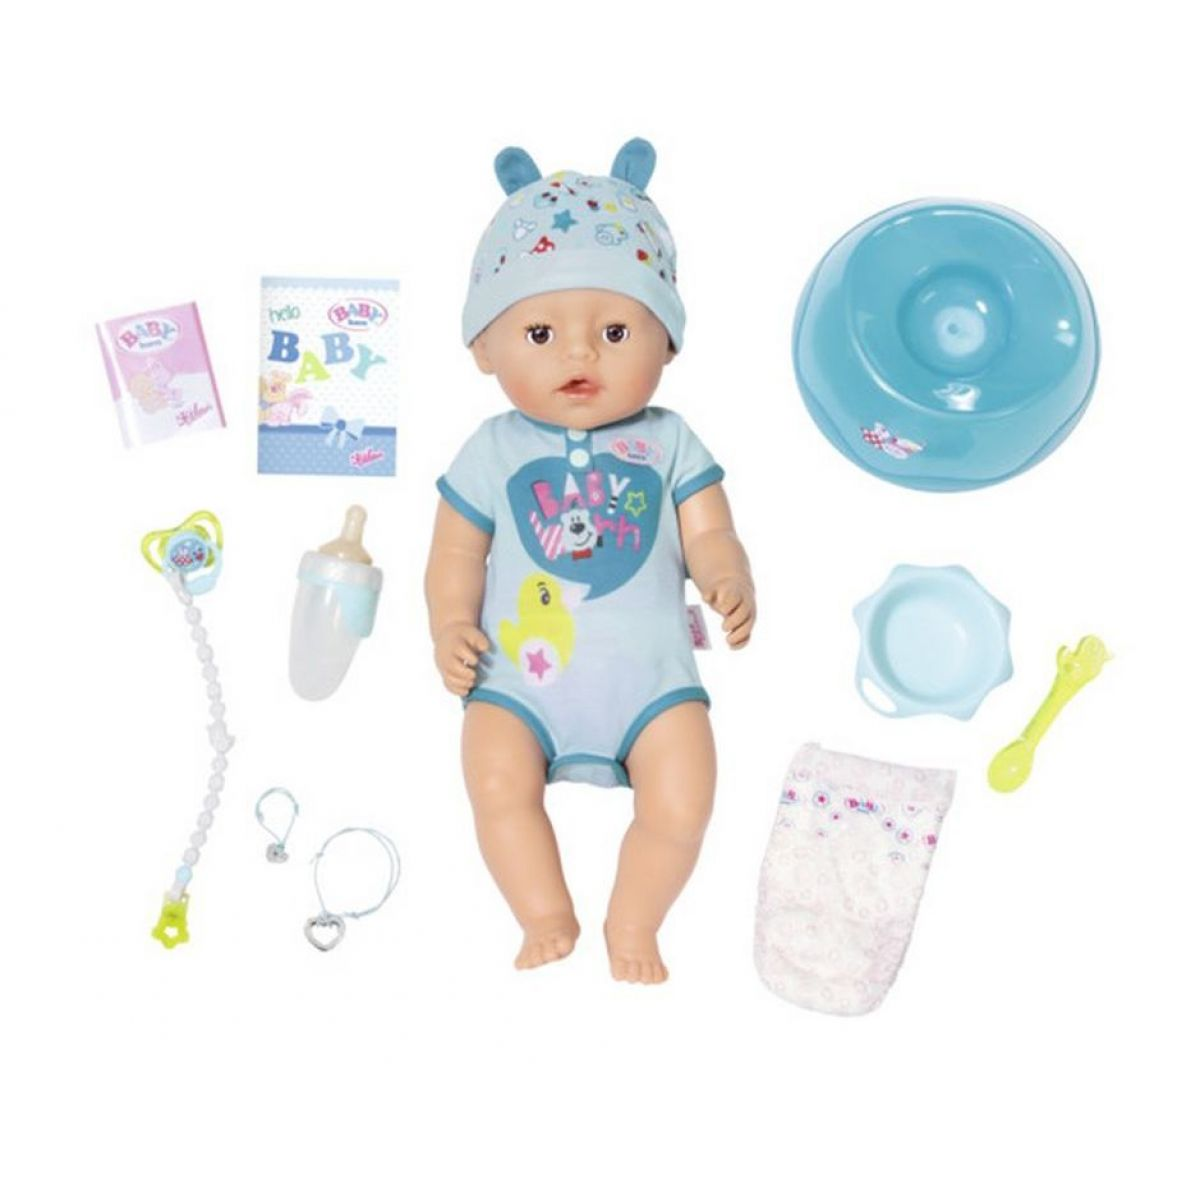 Zapf Creation Baby Born Soft Touch chlapeček 43 cm